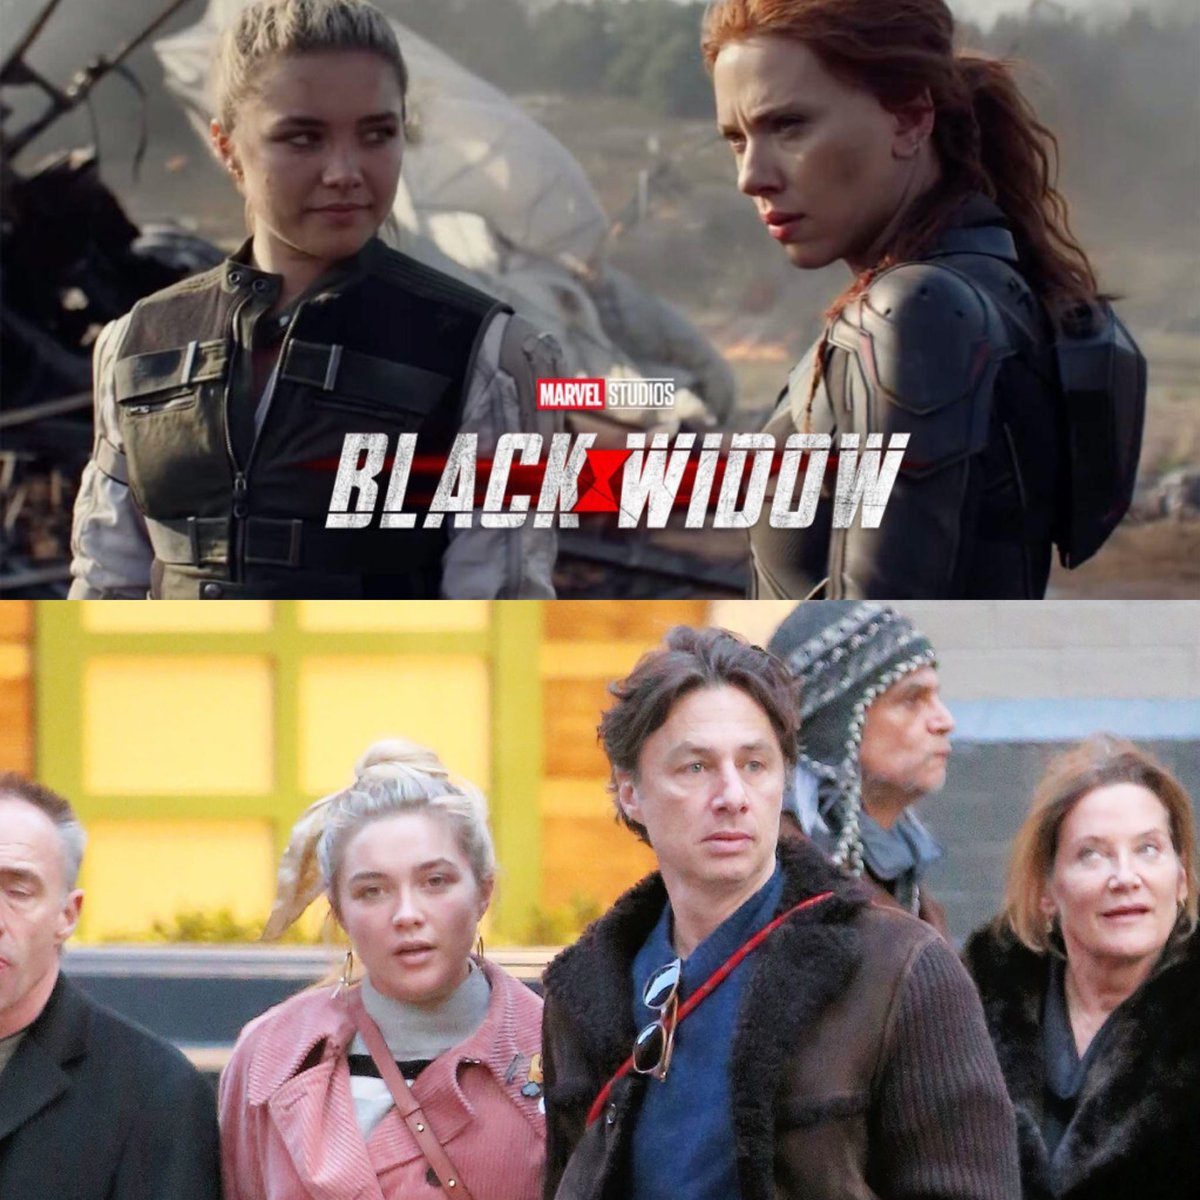 So does Florence Pugh being the new Black Widow mean that Zach Braff could be in the MCU 😂 #nnpa #blerdbinder #africanamericannews #news #comicnews #nerdnews #nerd #l #TV #movies #shadow&act #videogames #theblerdbinder #bestoftheday #newsoftheday #mcu #blackwidow #zachbraff https://t.co/0Ql2RwSl3r